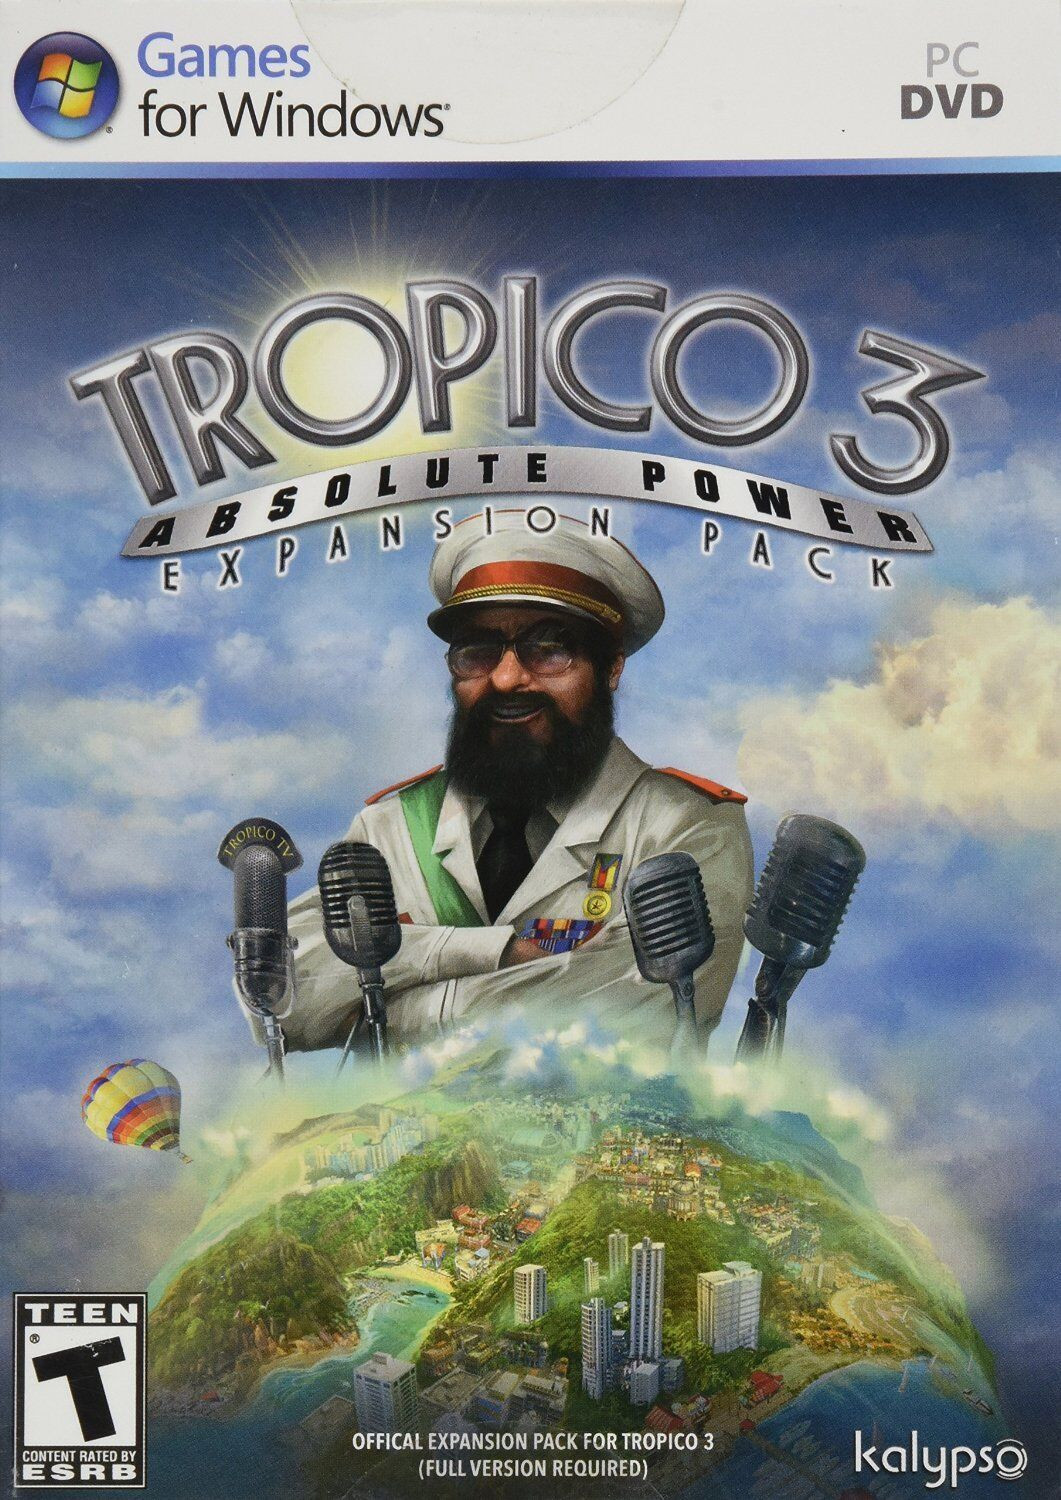 Computer Games - Tropico 3 Absolute Power PC Games Windows 10 8 7 XP Computer expansion pack